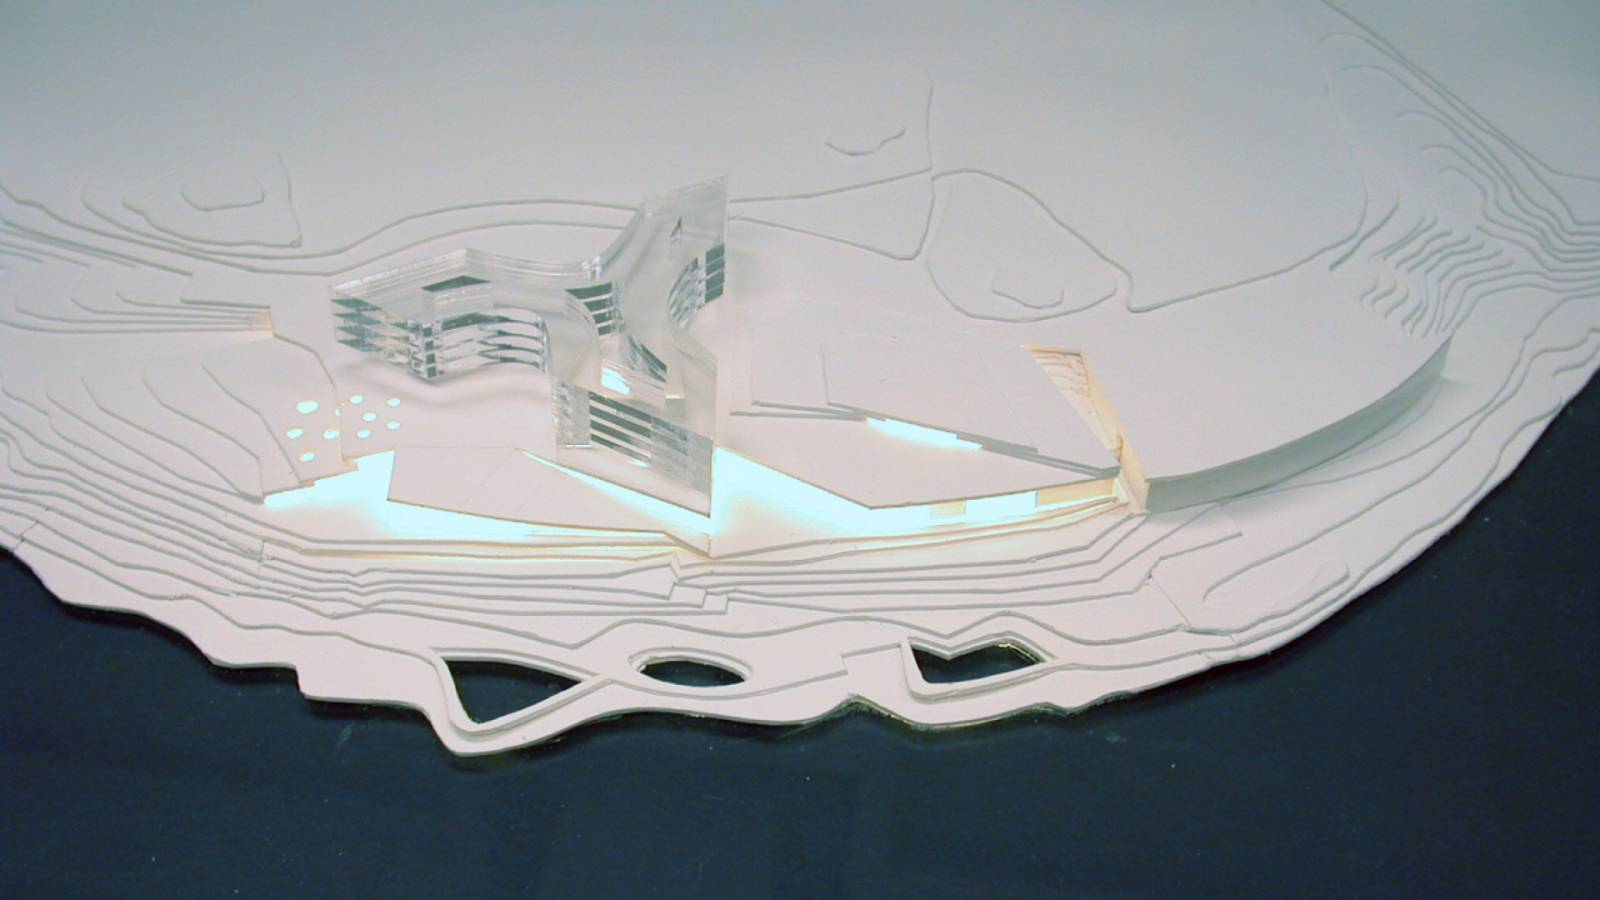 MODEL - Lernacken Hotel - SPOL Architects